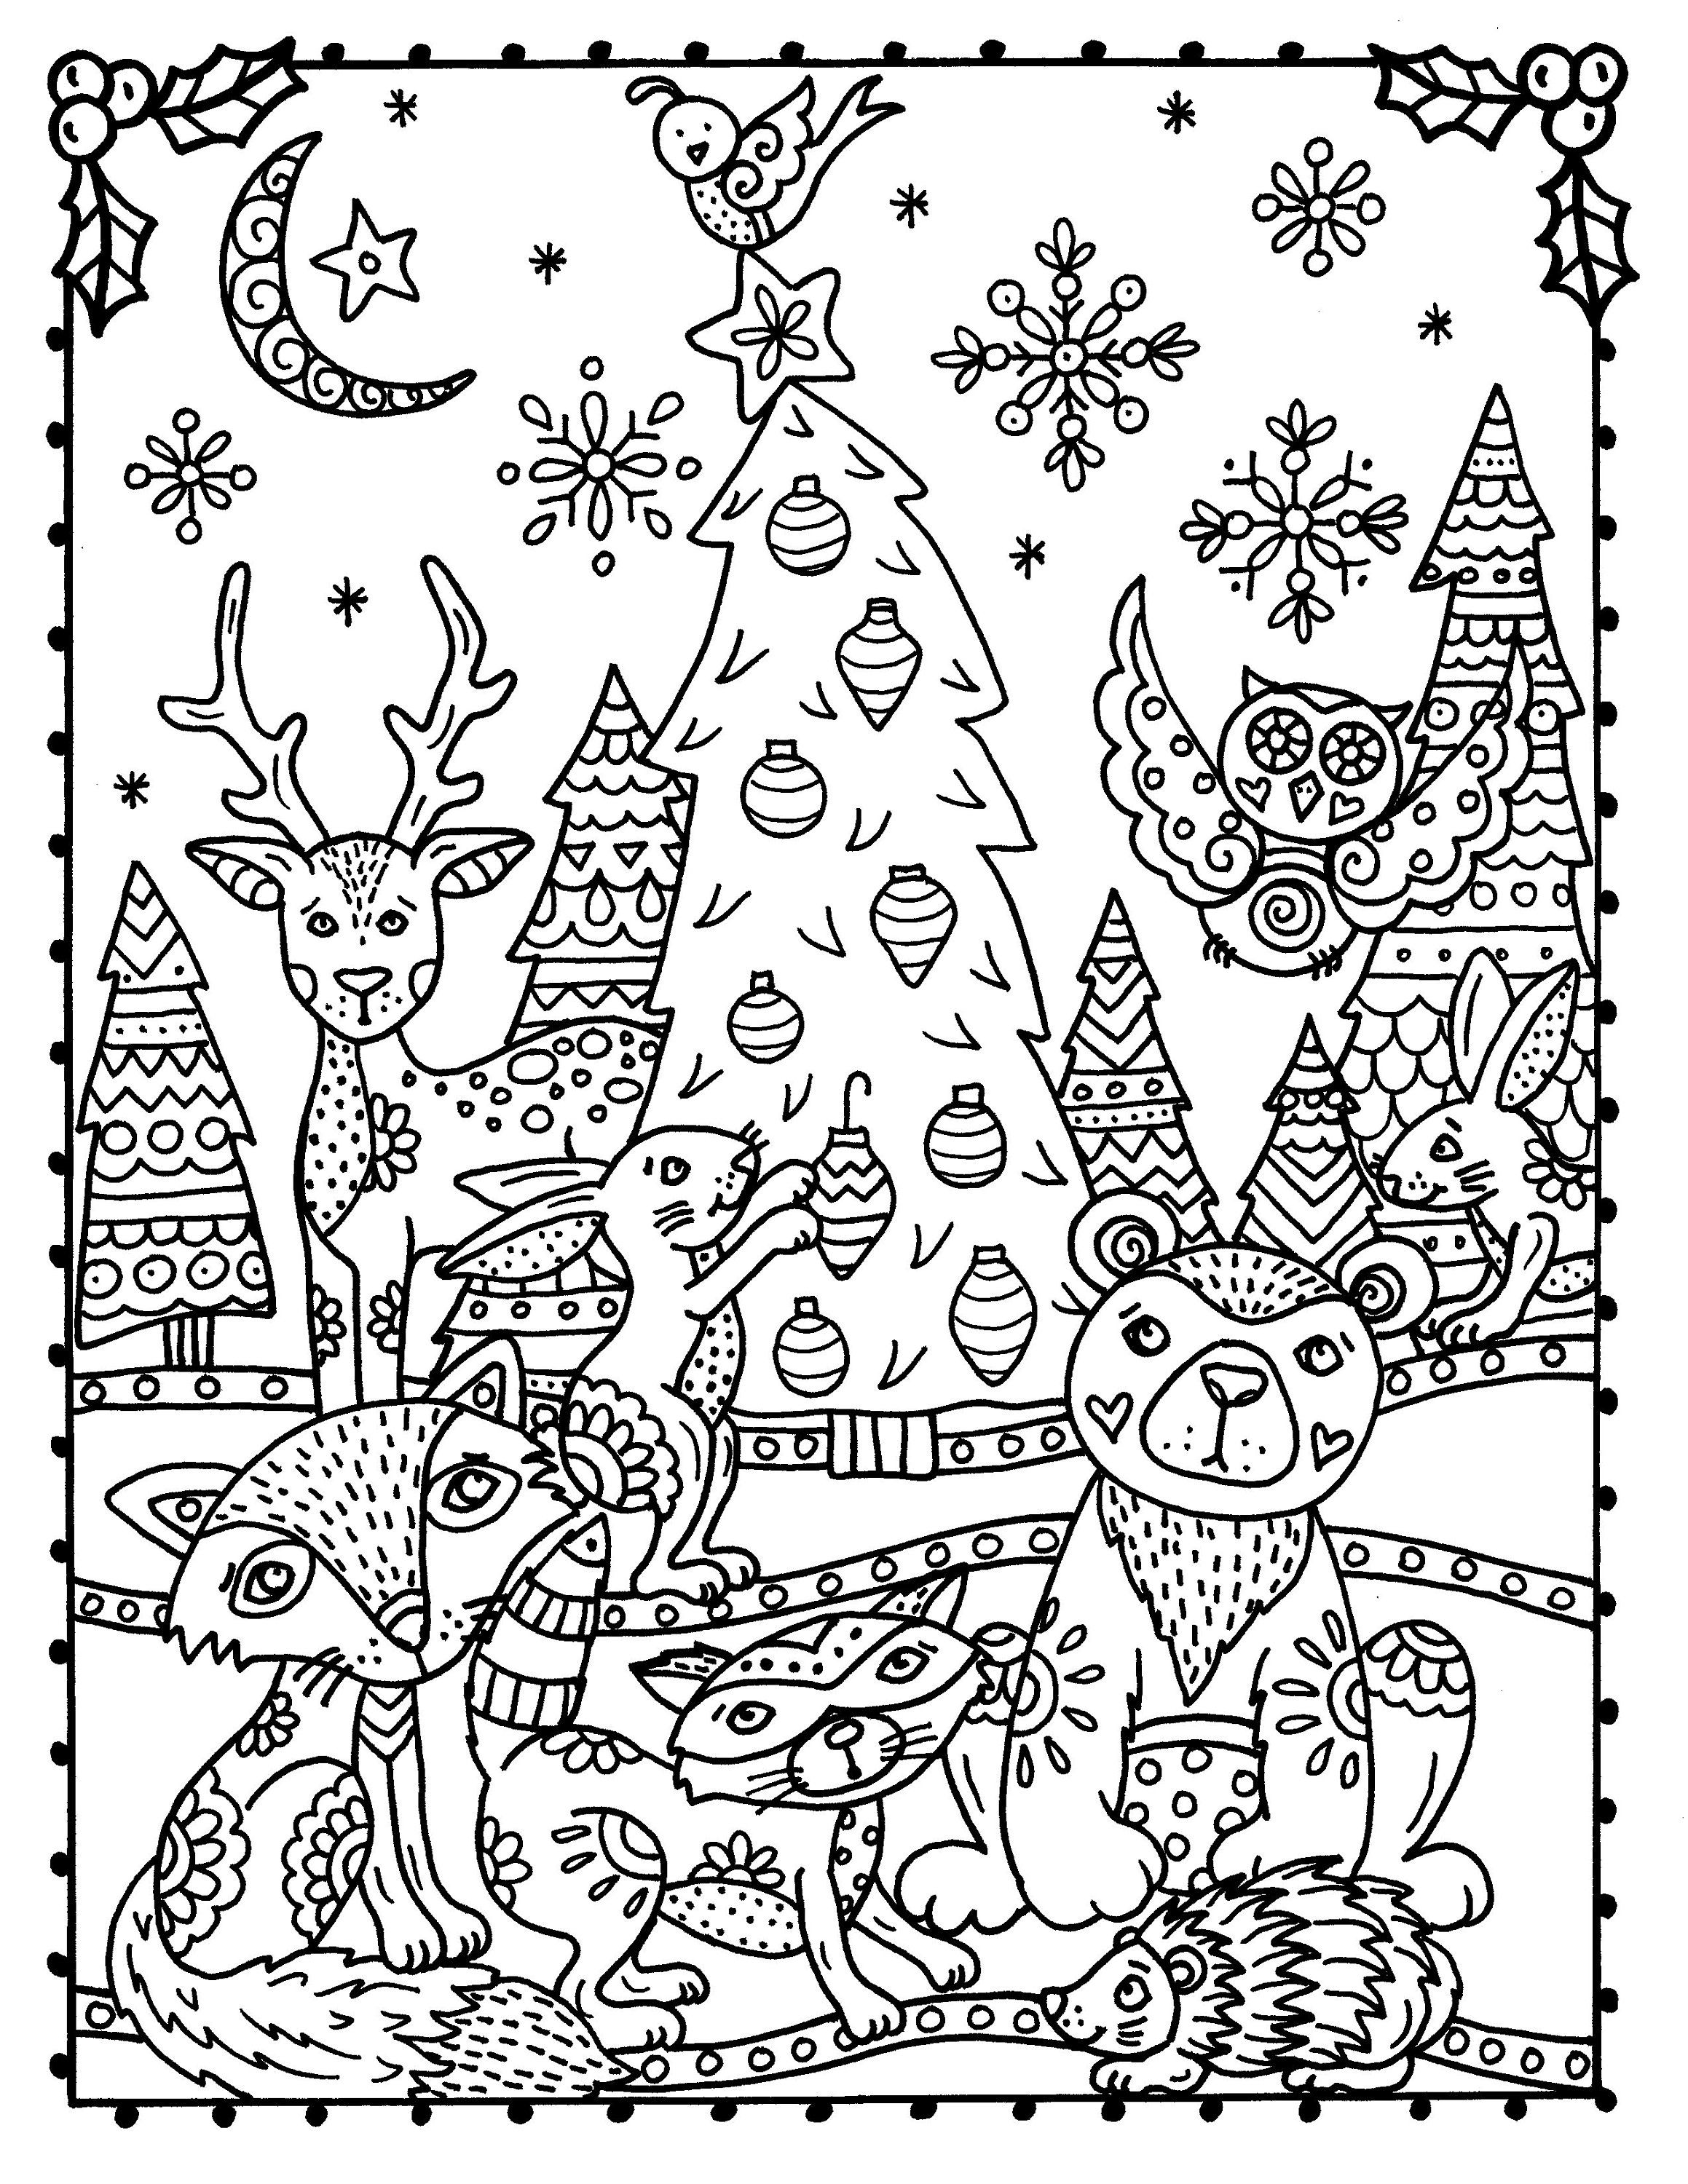 Winter Woodland Wonderland Coloring Book Digital Printable Etsy Coloring Books Animal Coloring Pages Abstract Coloring Pages